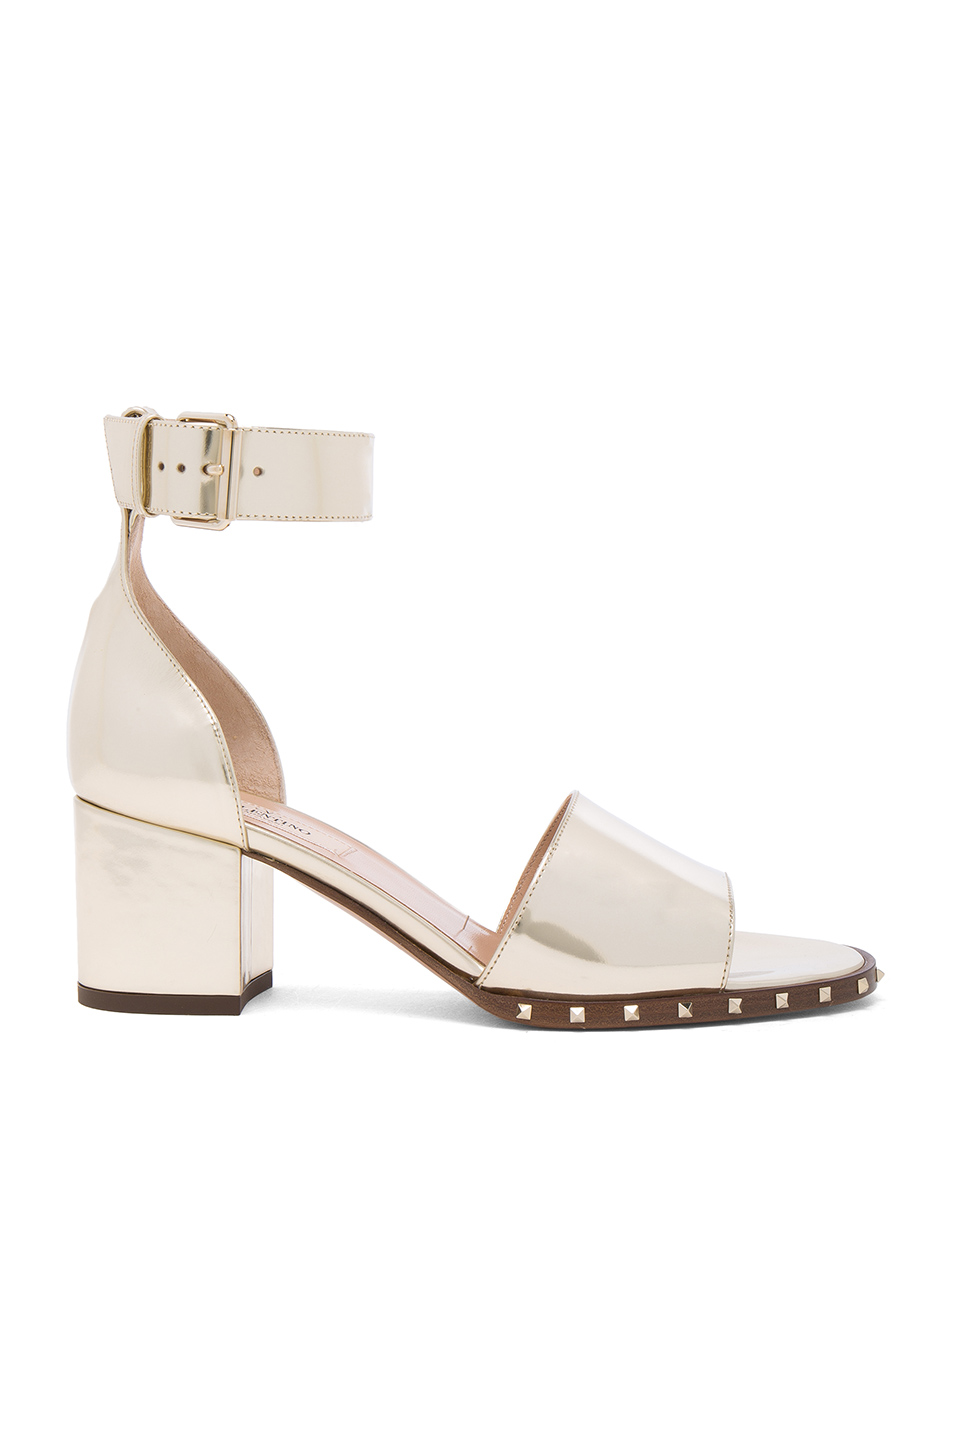 Valentino Leather Soul Rockstud Sandals in Metallics